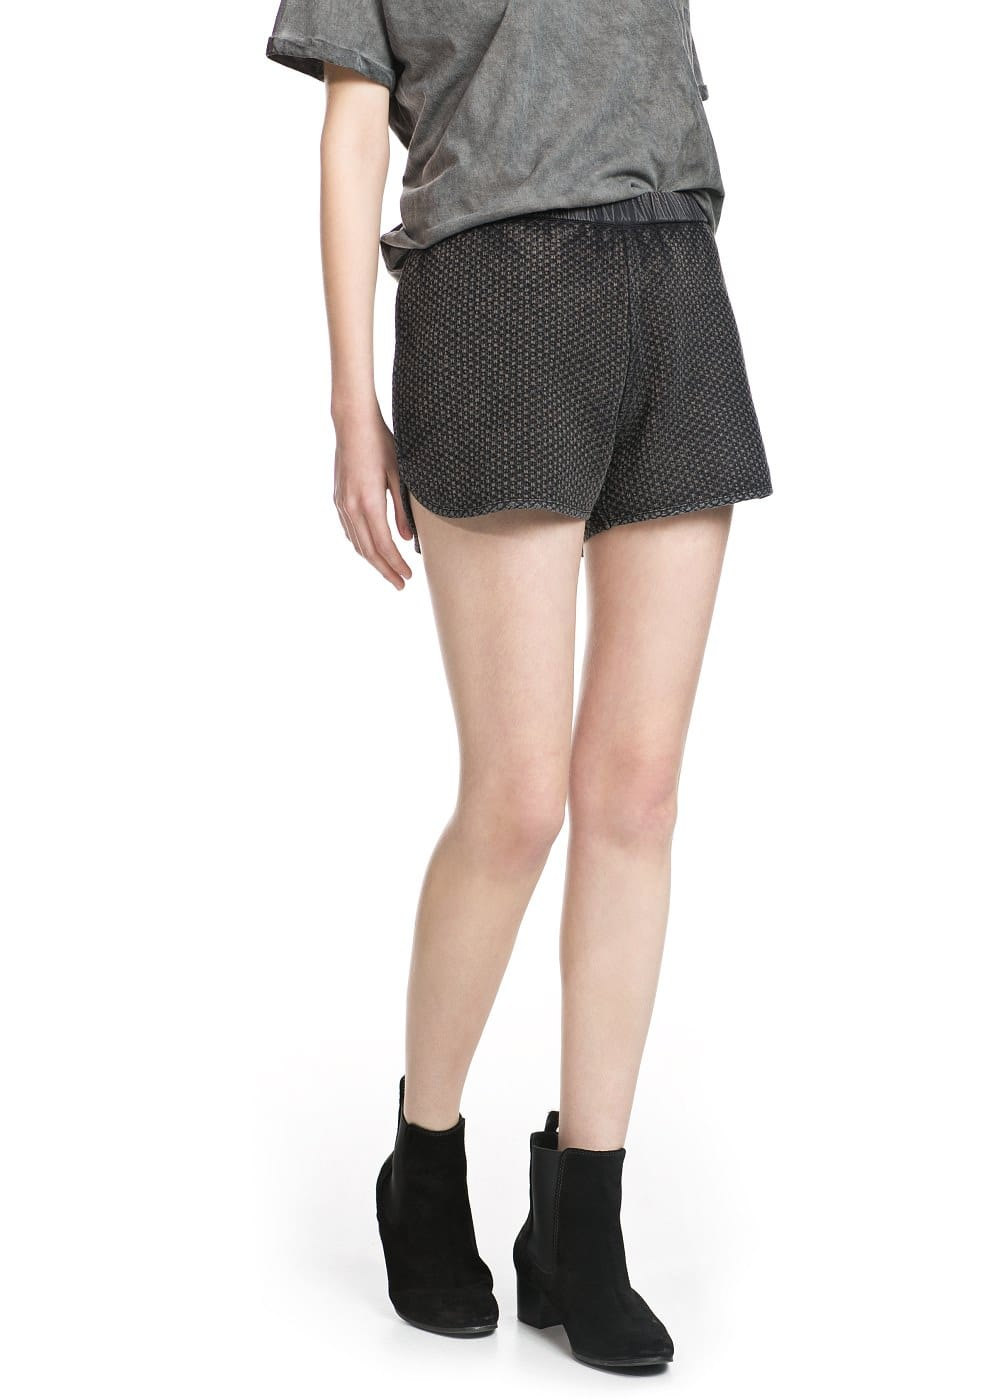 Washed textured shorts